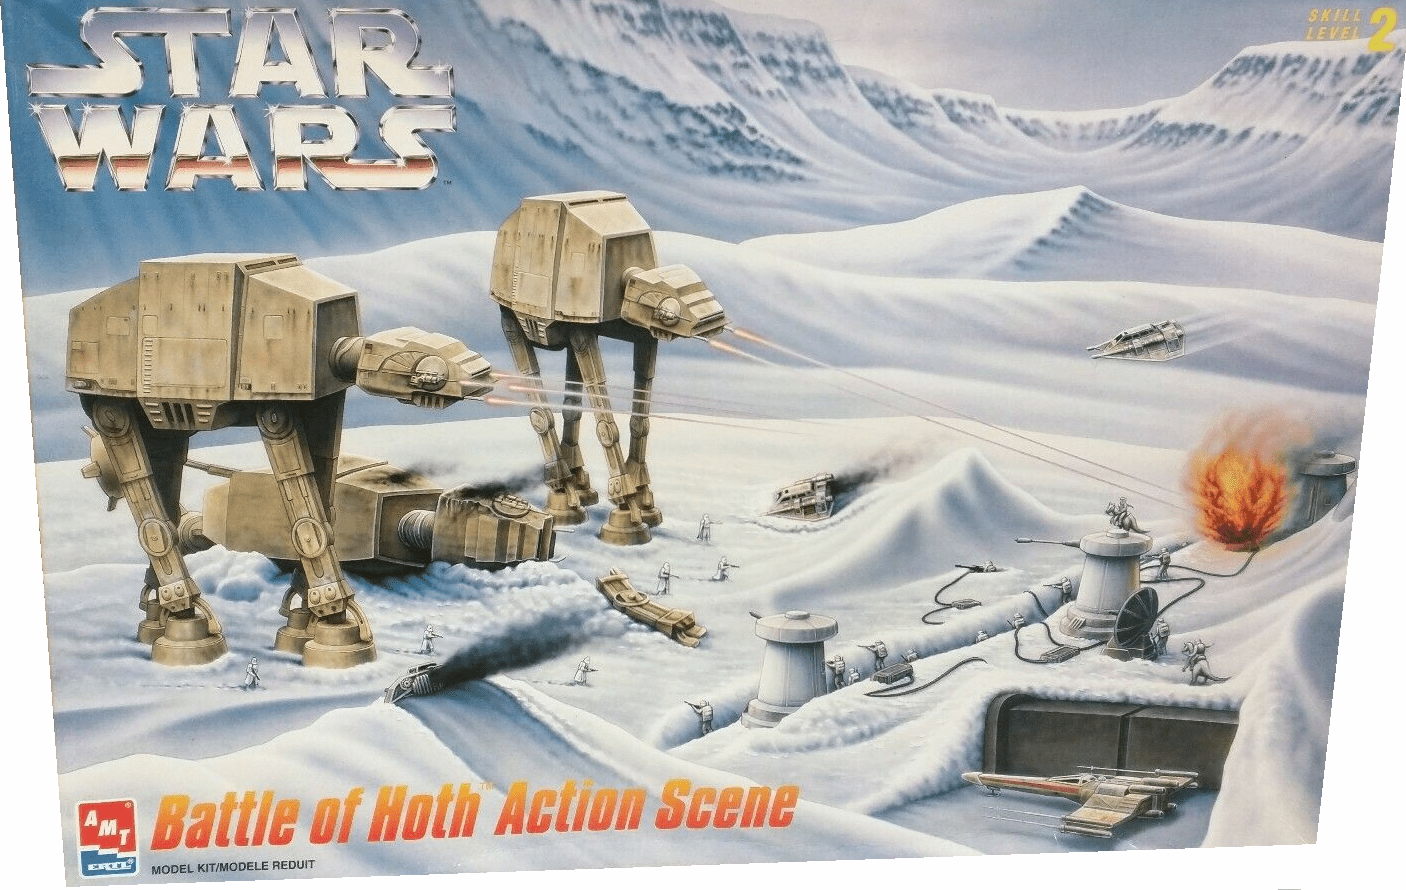 AMT/ERTL Star Wars Battle of Hoth Action Scene Model Kit